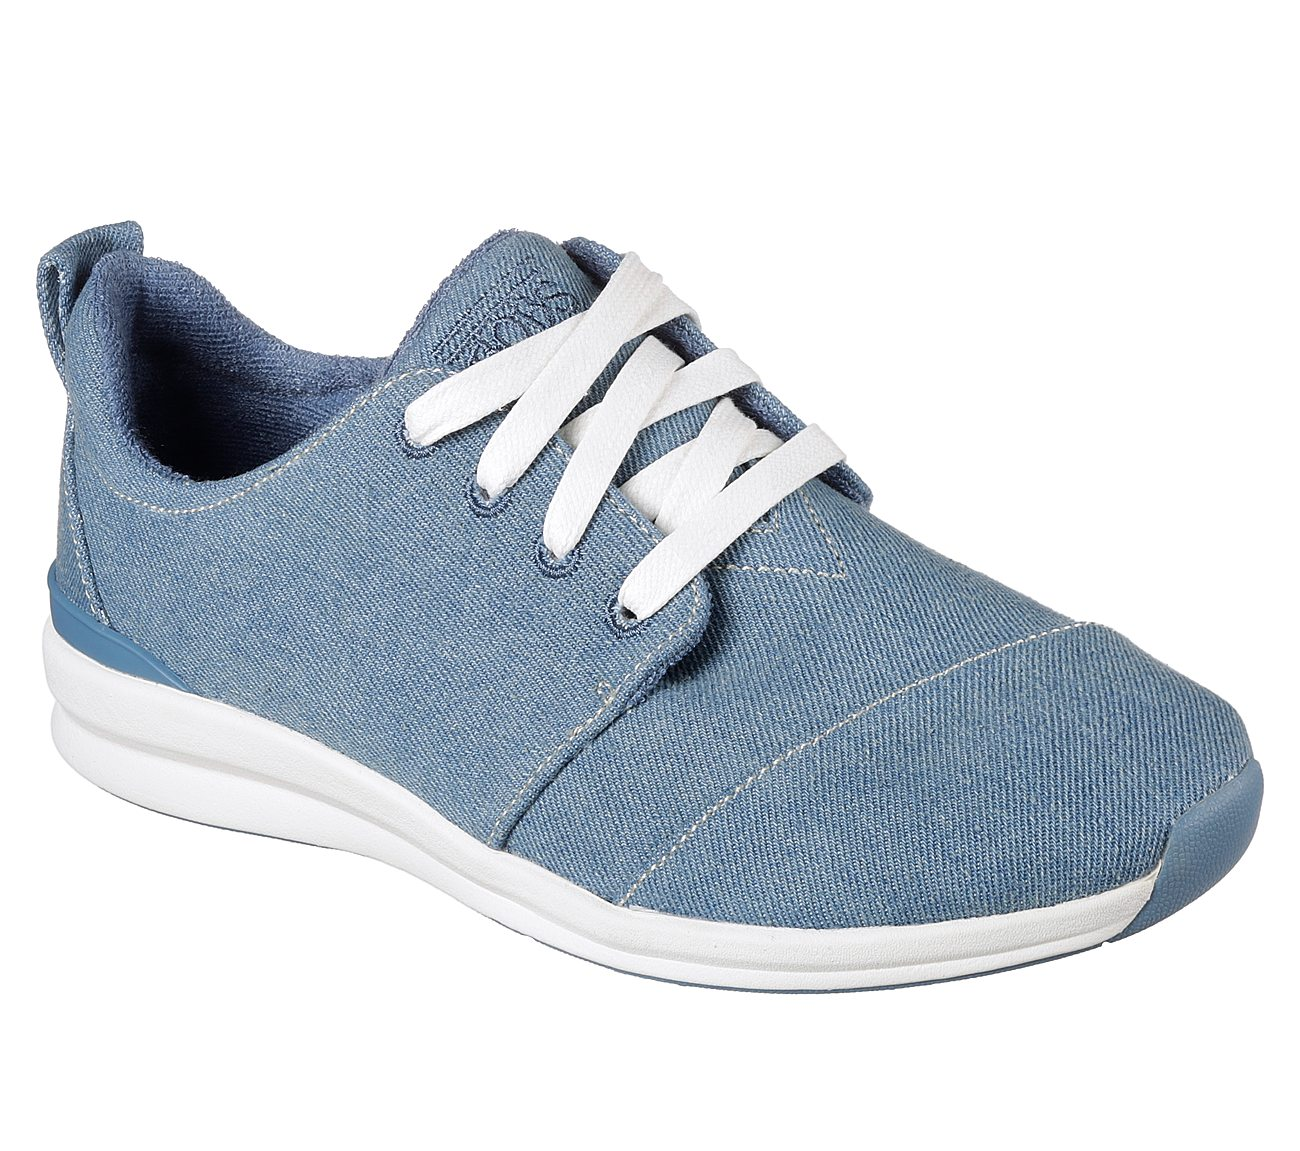 Bobs Phresh - Denim Glory BOBS from SKECHERS U67j0d1